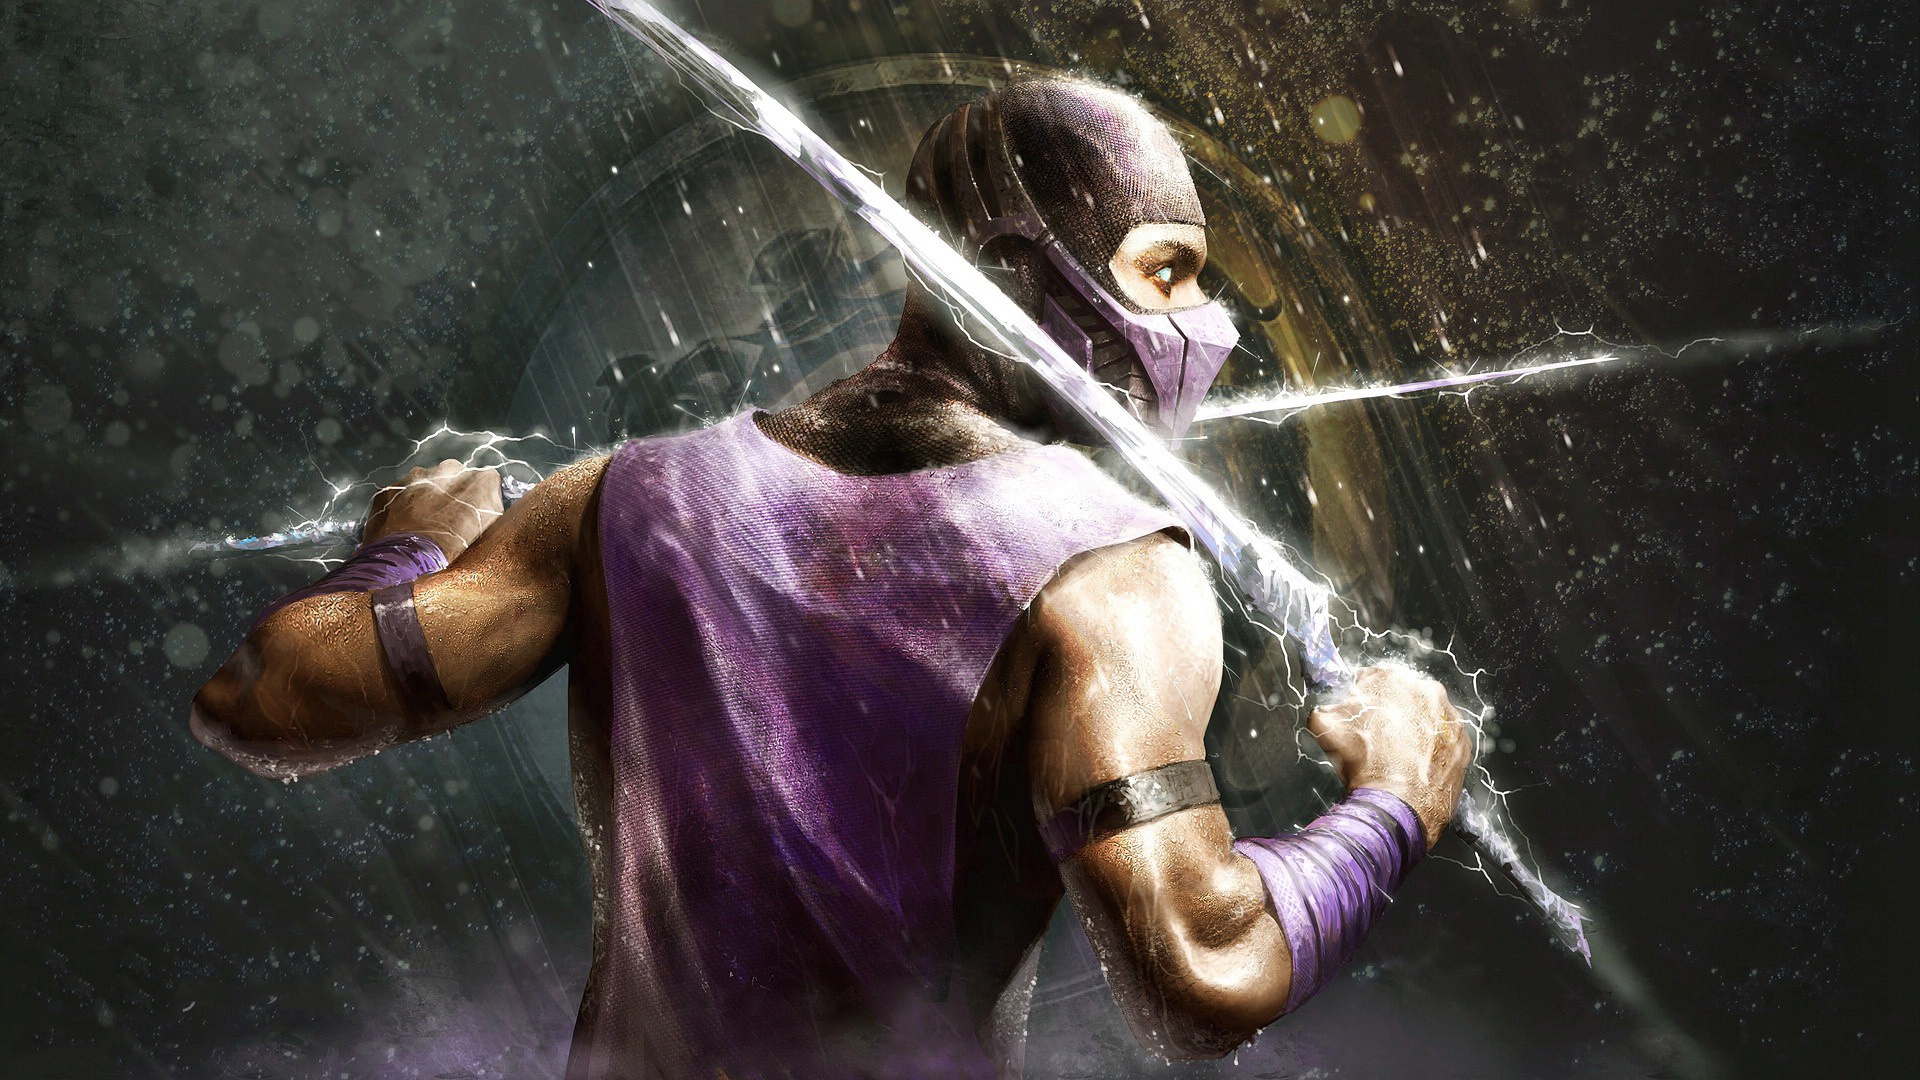 Rain in Mortal Kombat Exclusive HD Wallpapers 5616 1920x1080